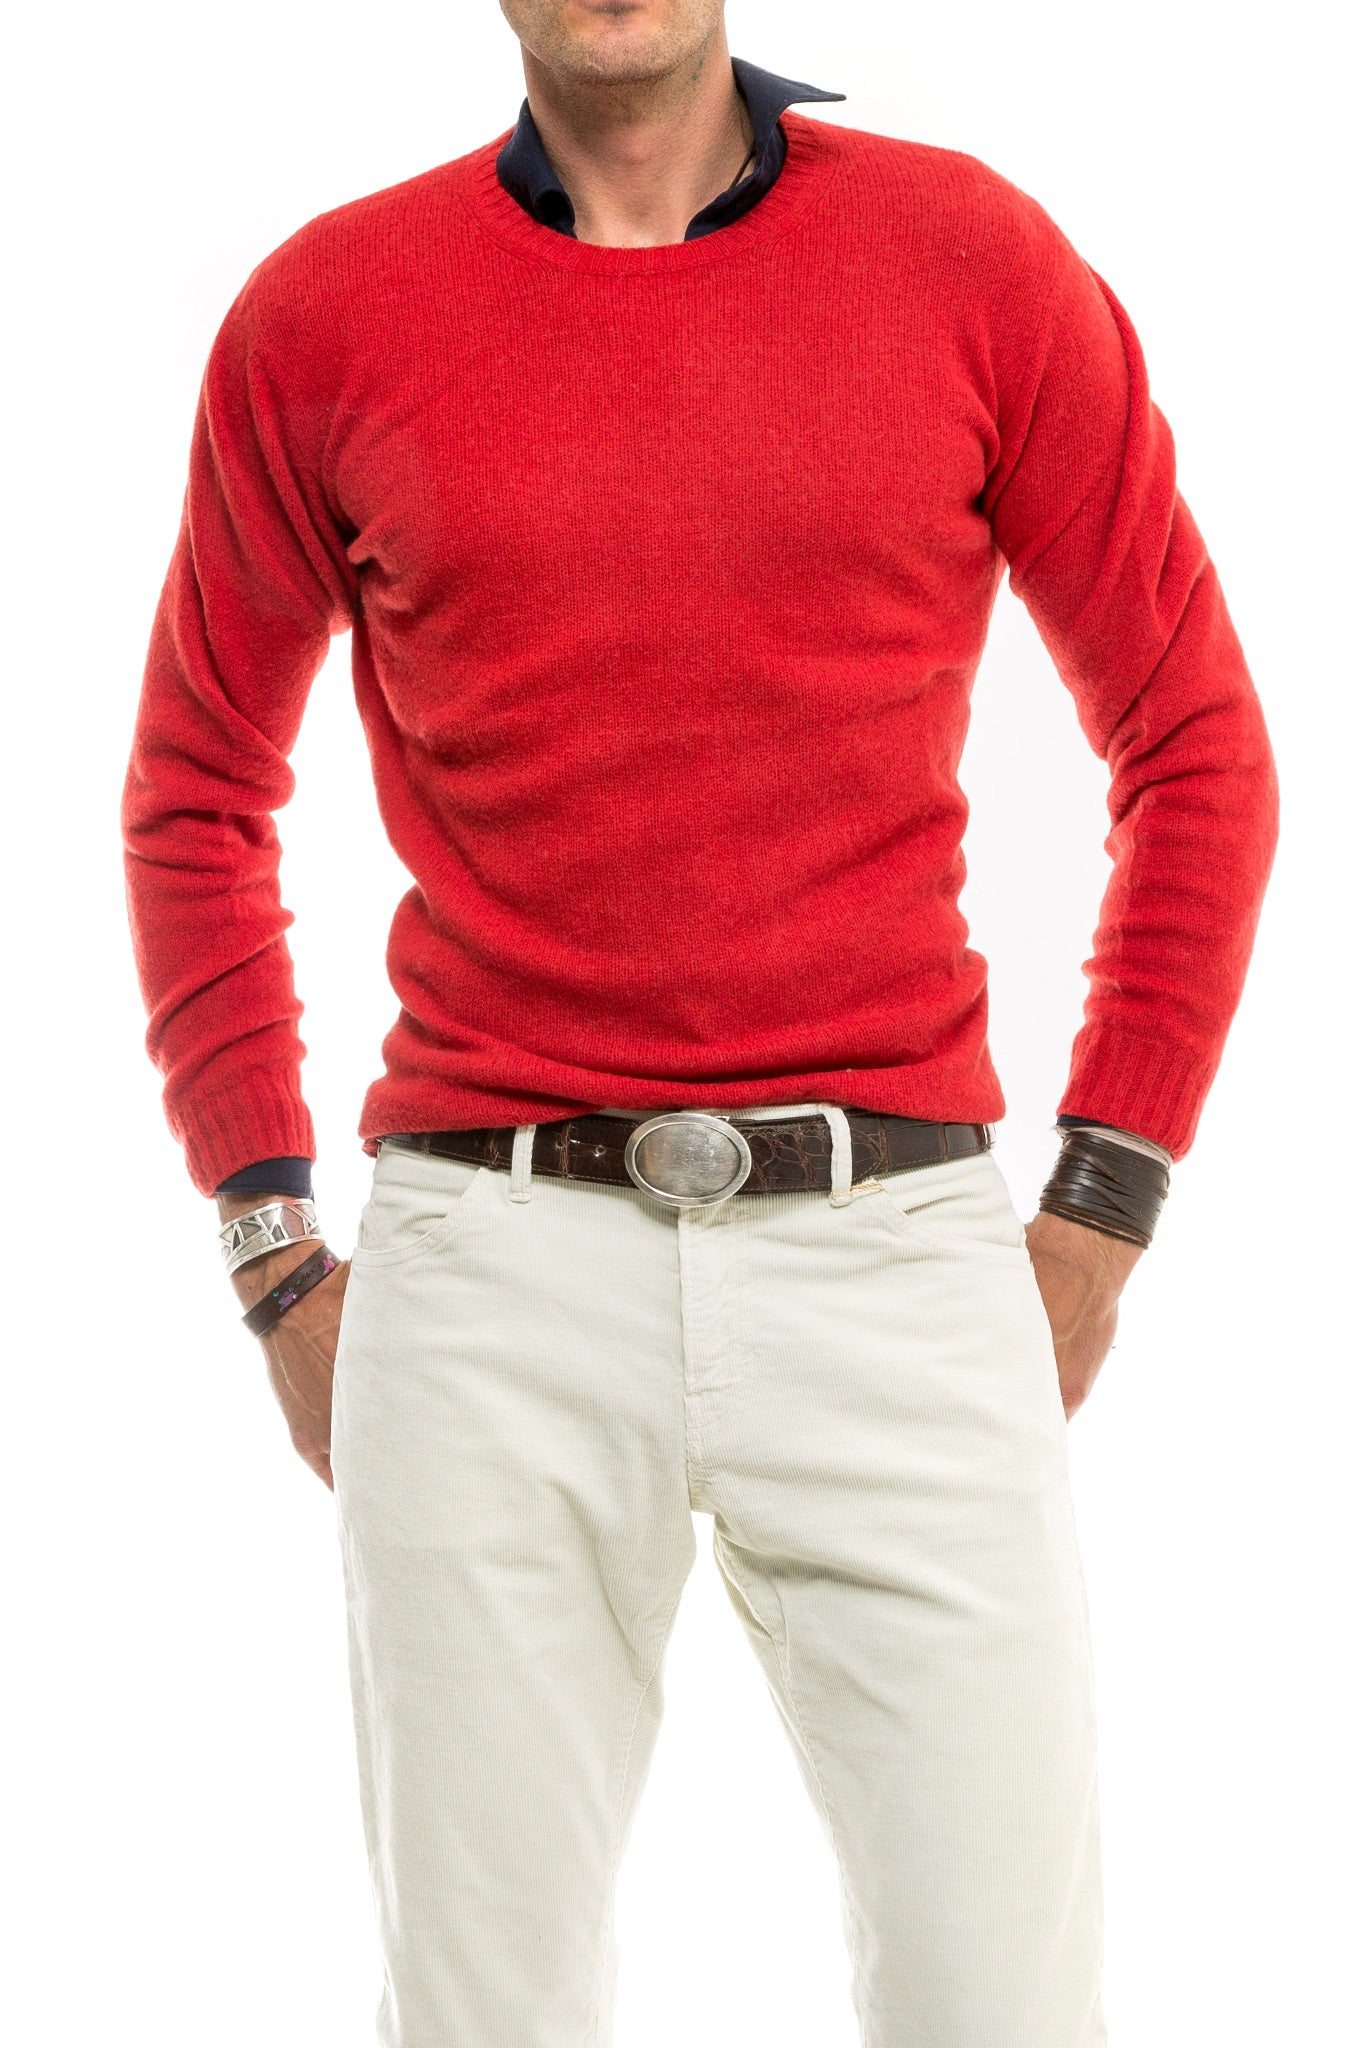 Axel's Bartoli Crew Neck in Red (1477781127261)